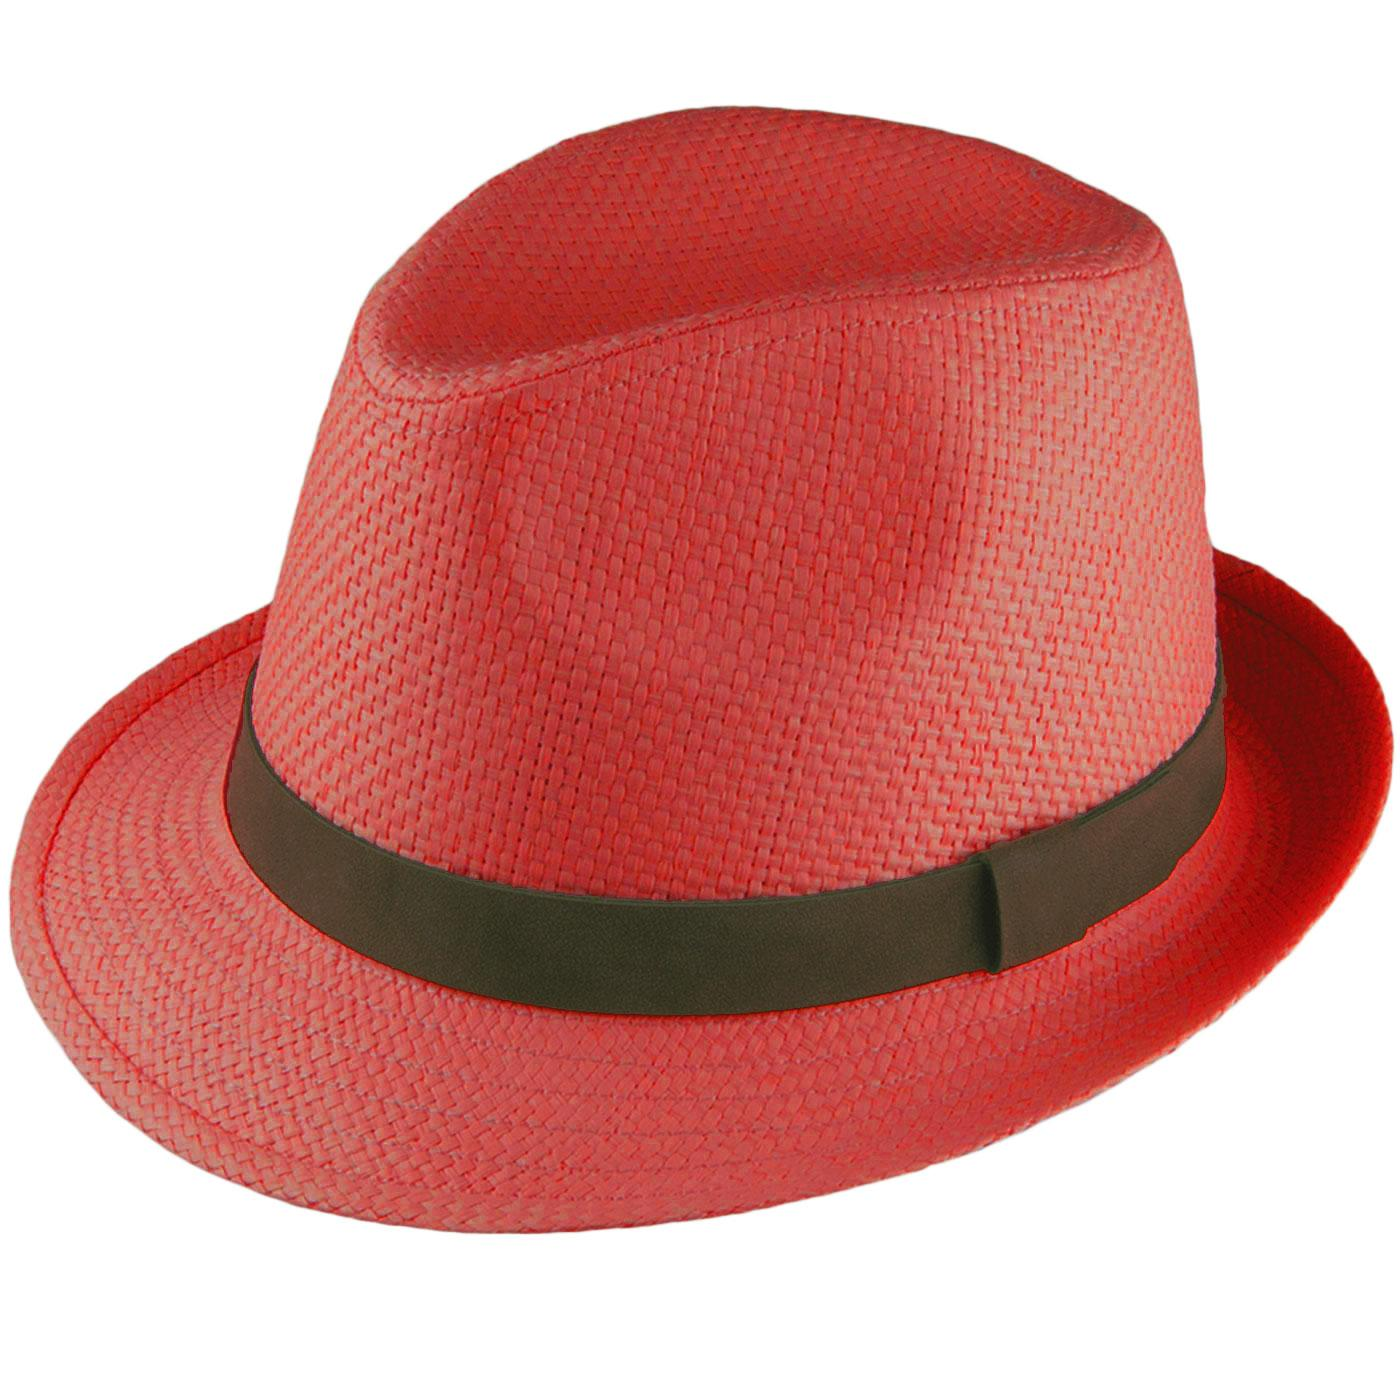 FAILSWORTH Men's Retro 70s Straw Trilby Hat (Red)